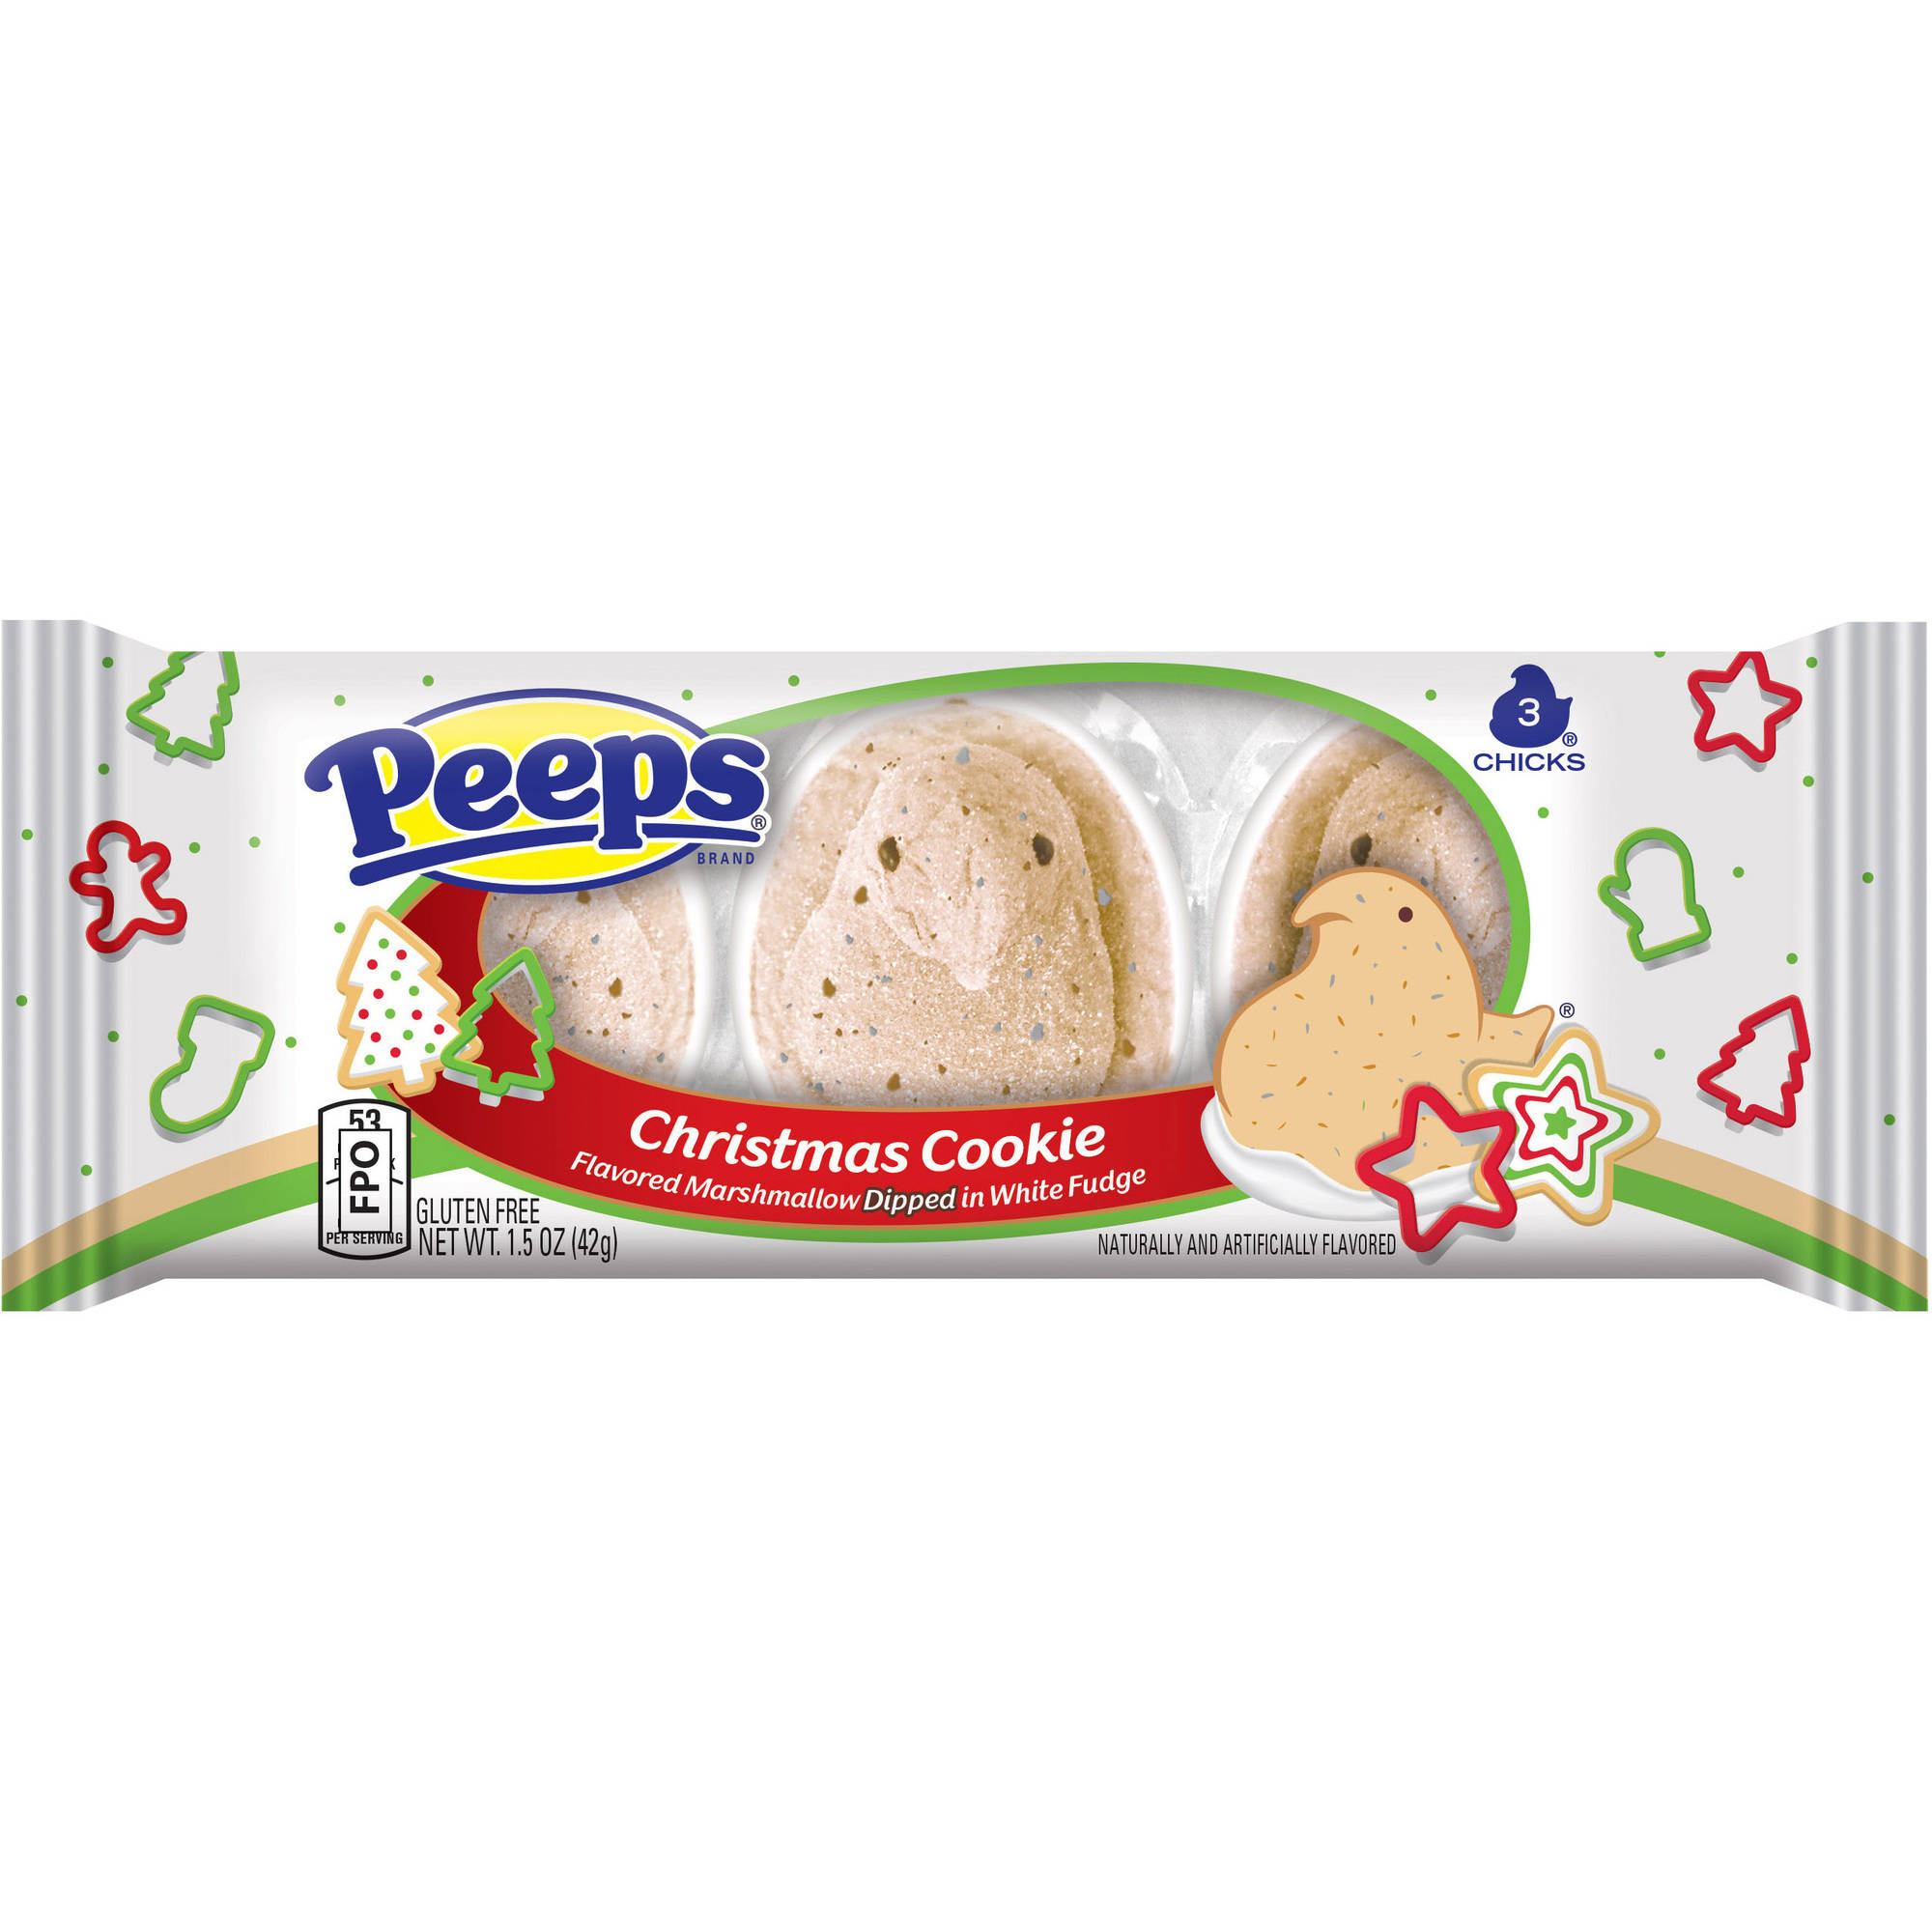 PEEPS Christmas Cookie Marshmallow Chicks, 3 count, 1.5 oz